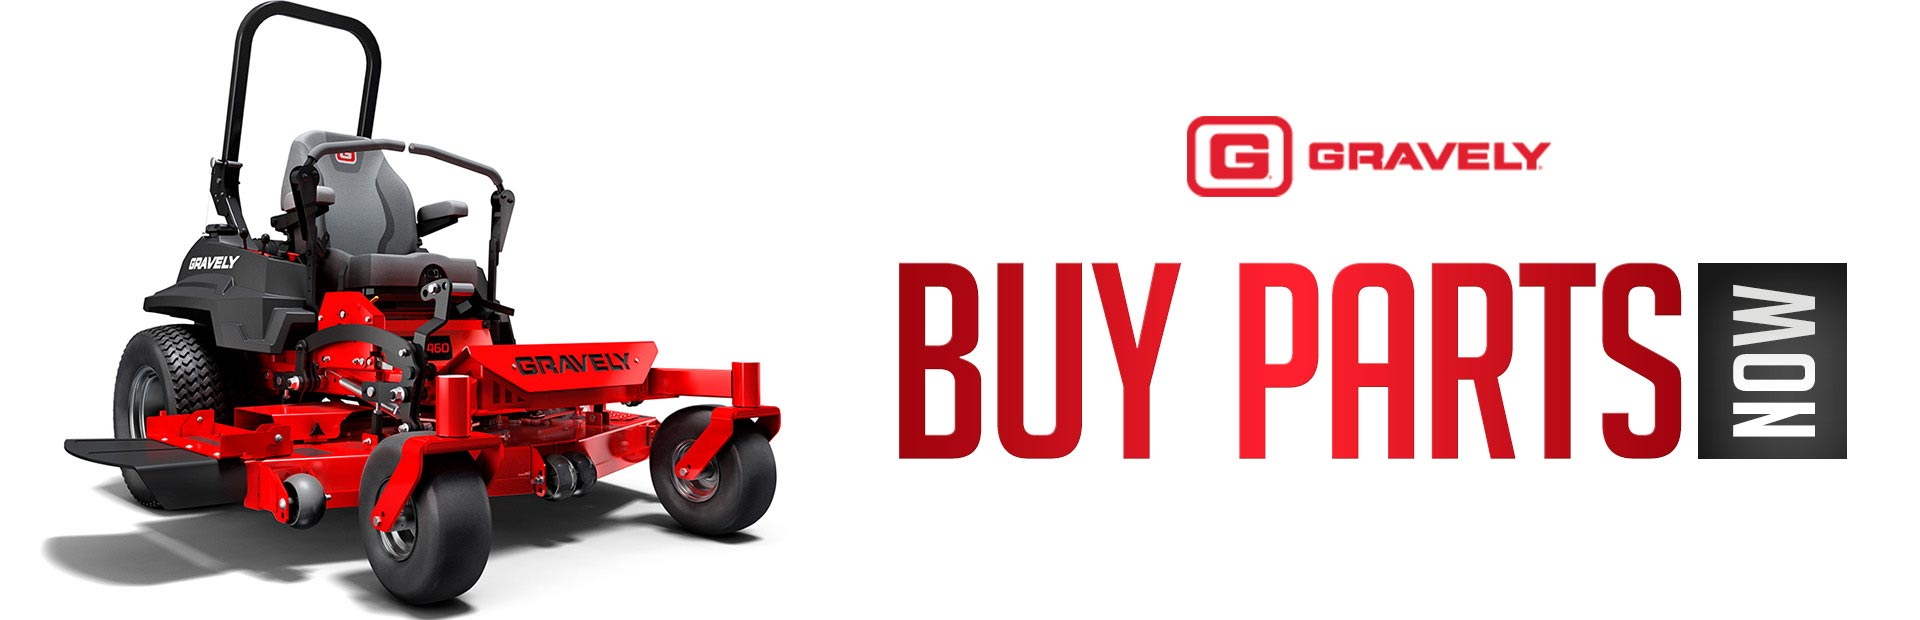 Gravely Parts: Click here to buy parts now.